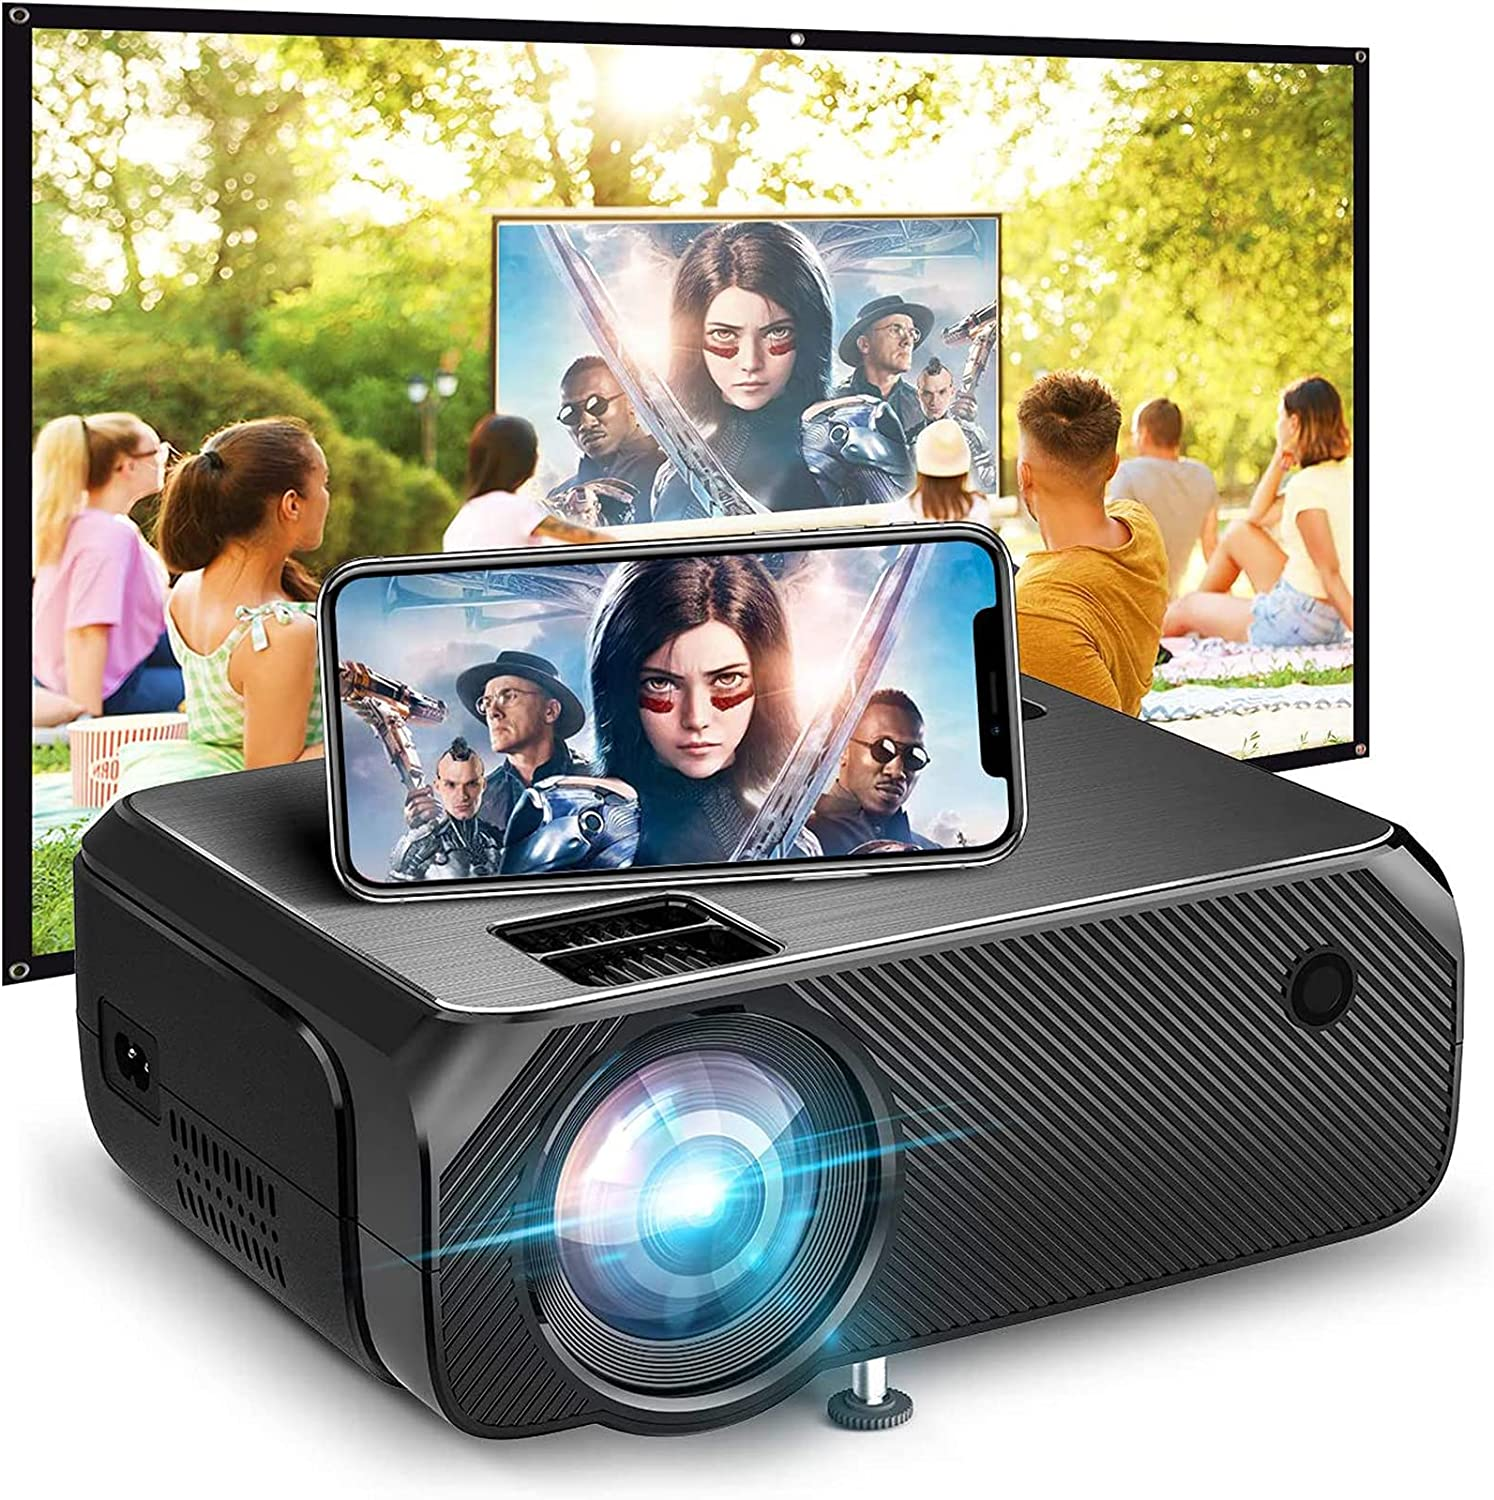 tyui Projector, Mini Mobile Phone, Wireless WiFi, Same Screen Projector, Home Hd Support 1080p Micro Led, Hanger + Built-in Android + Bluetooth